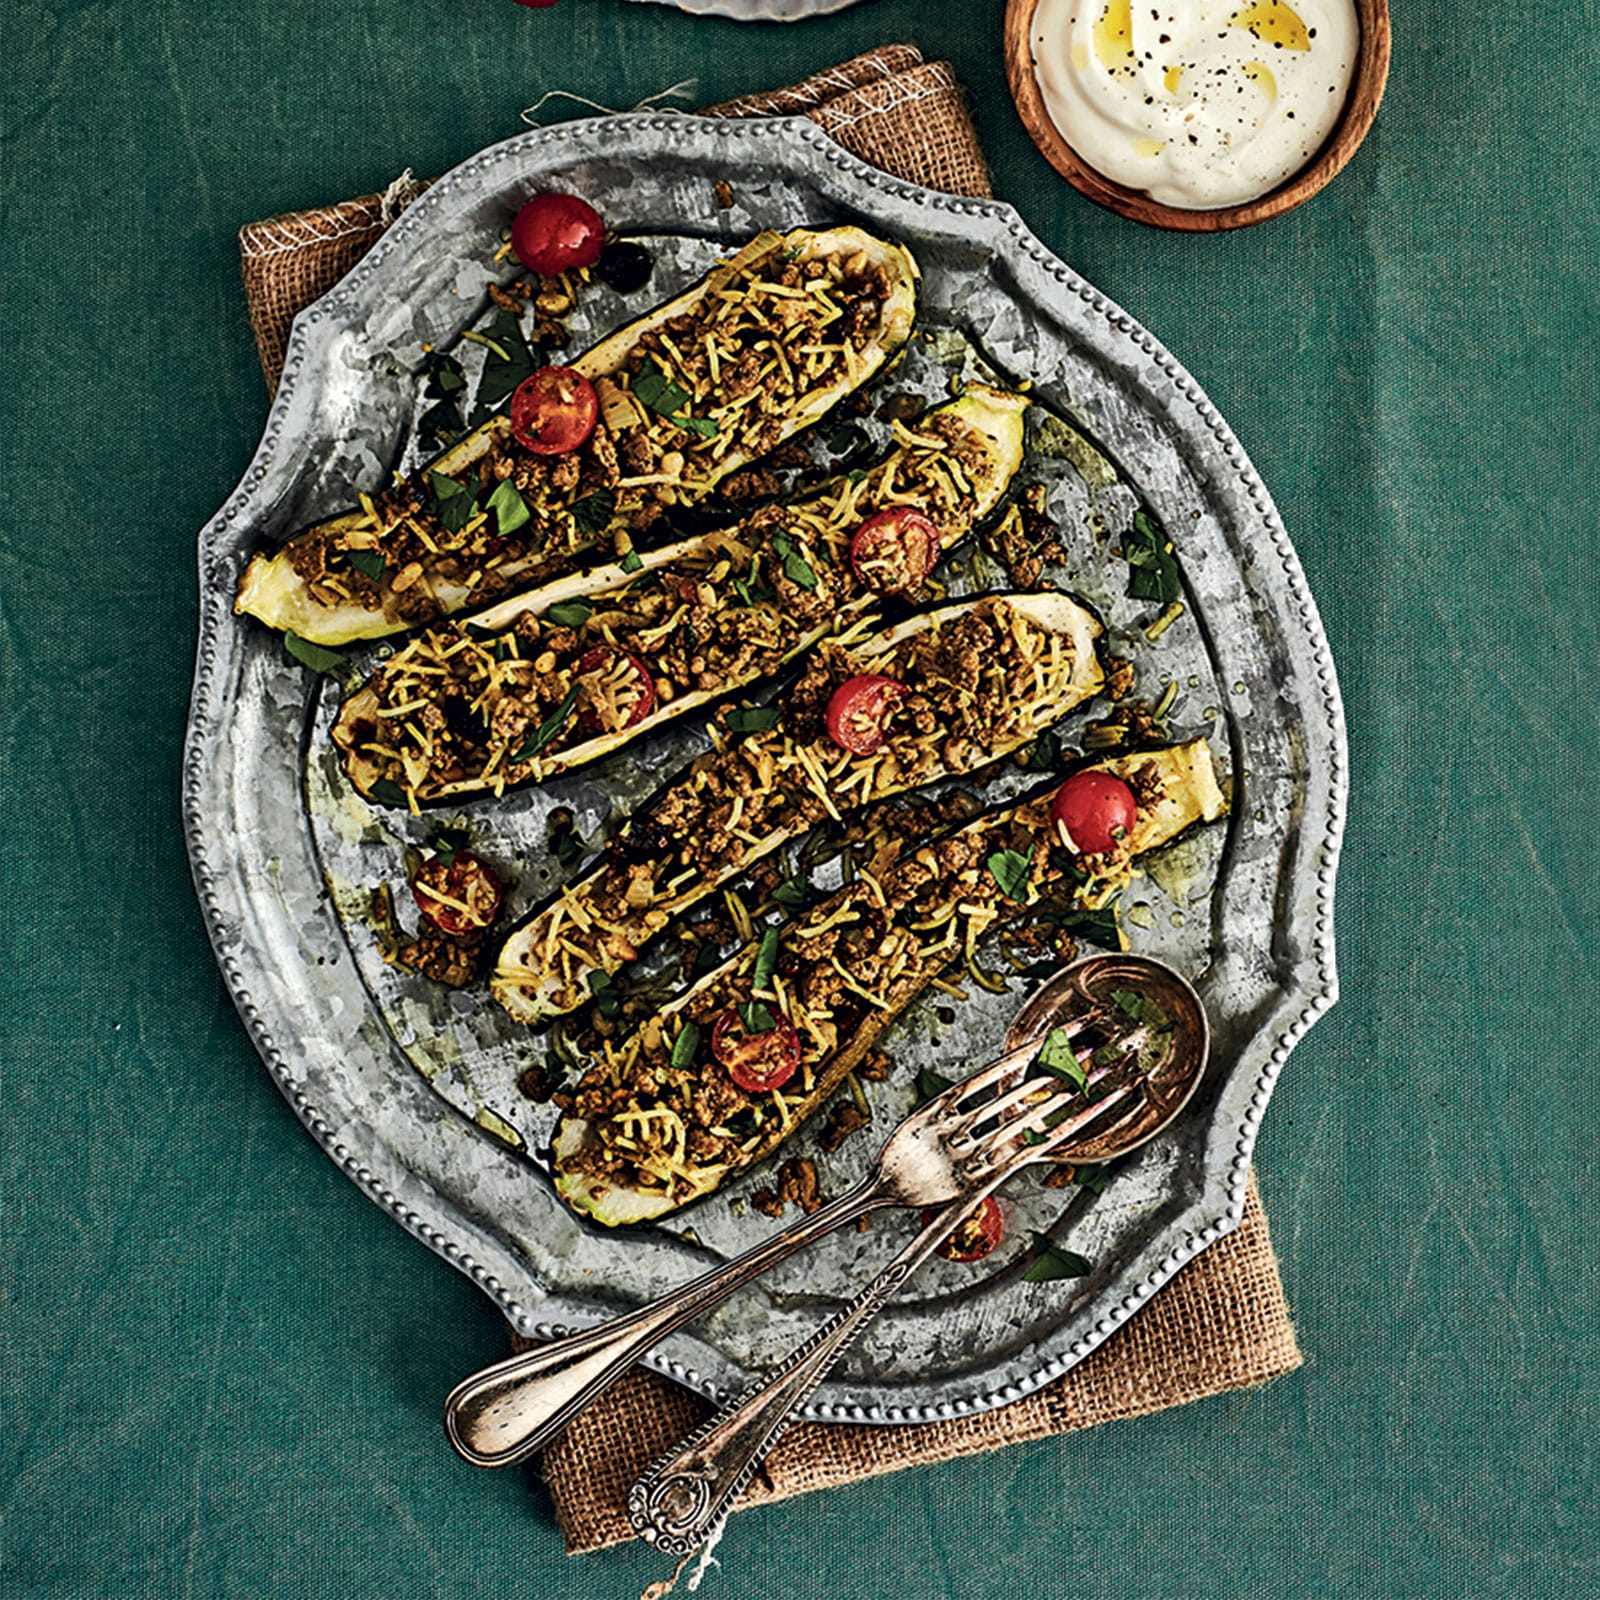 Spiced Lamb and Zucchini Boats